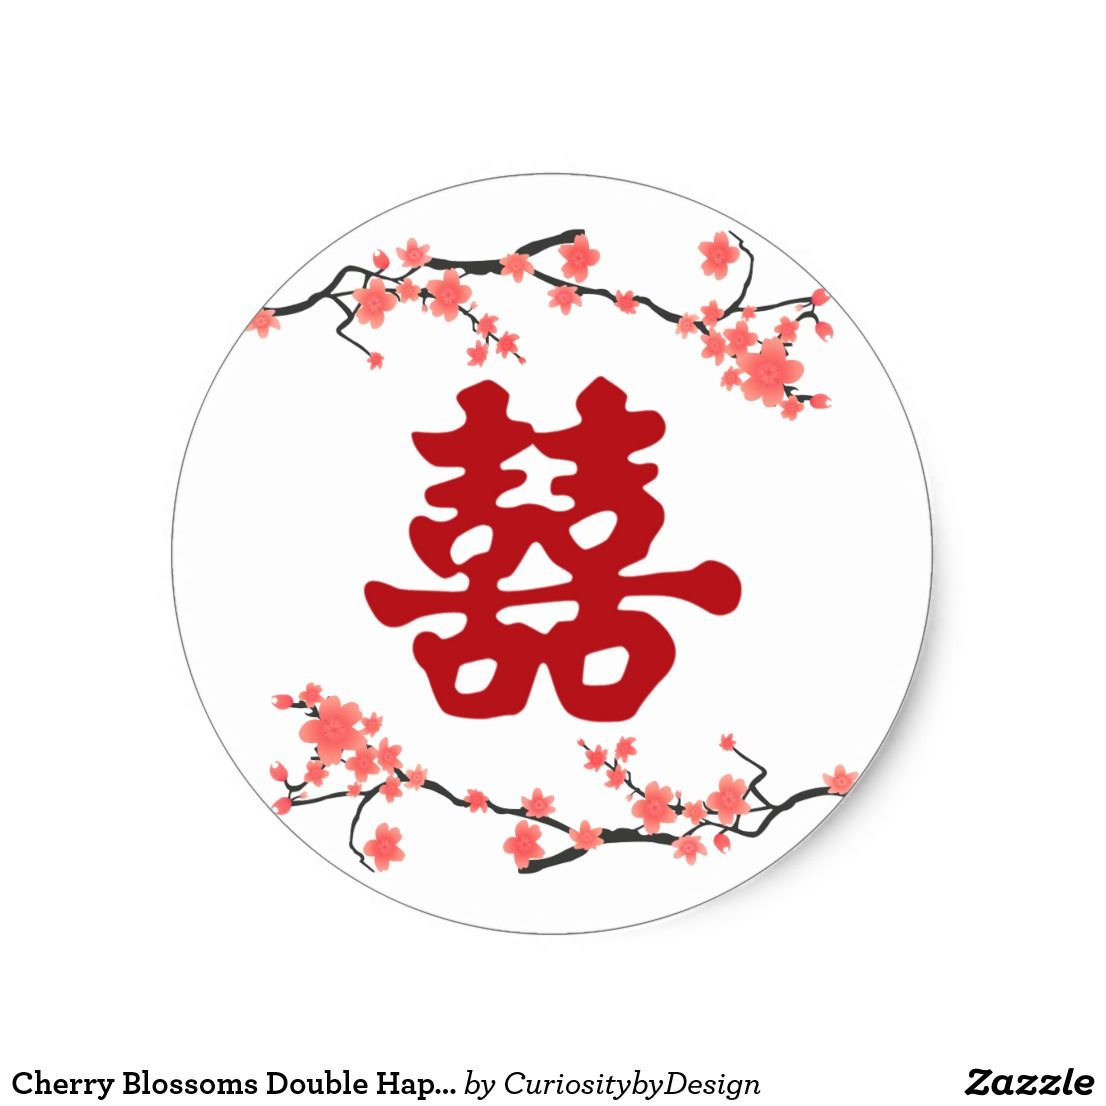 Cherry Blossoms Double Happiness Chinese Classic Round Sticker Zazzle Com In 2021 Double Happiness Chinese Double Happiness Double Happiness Symbol